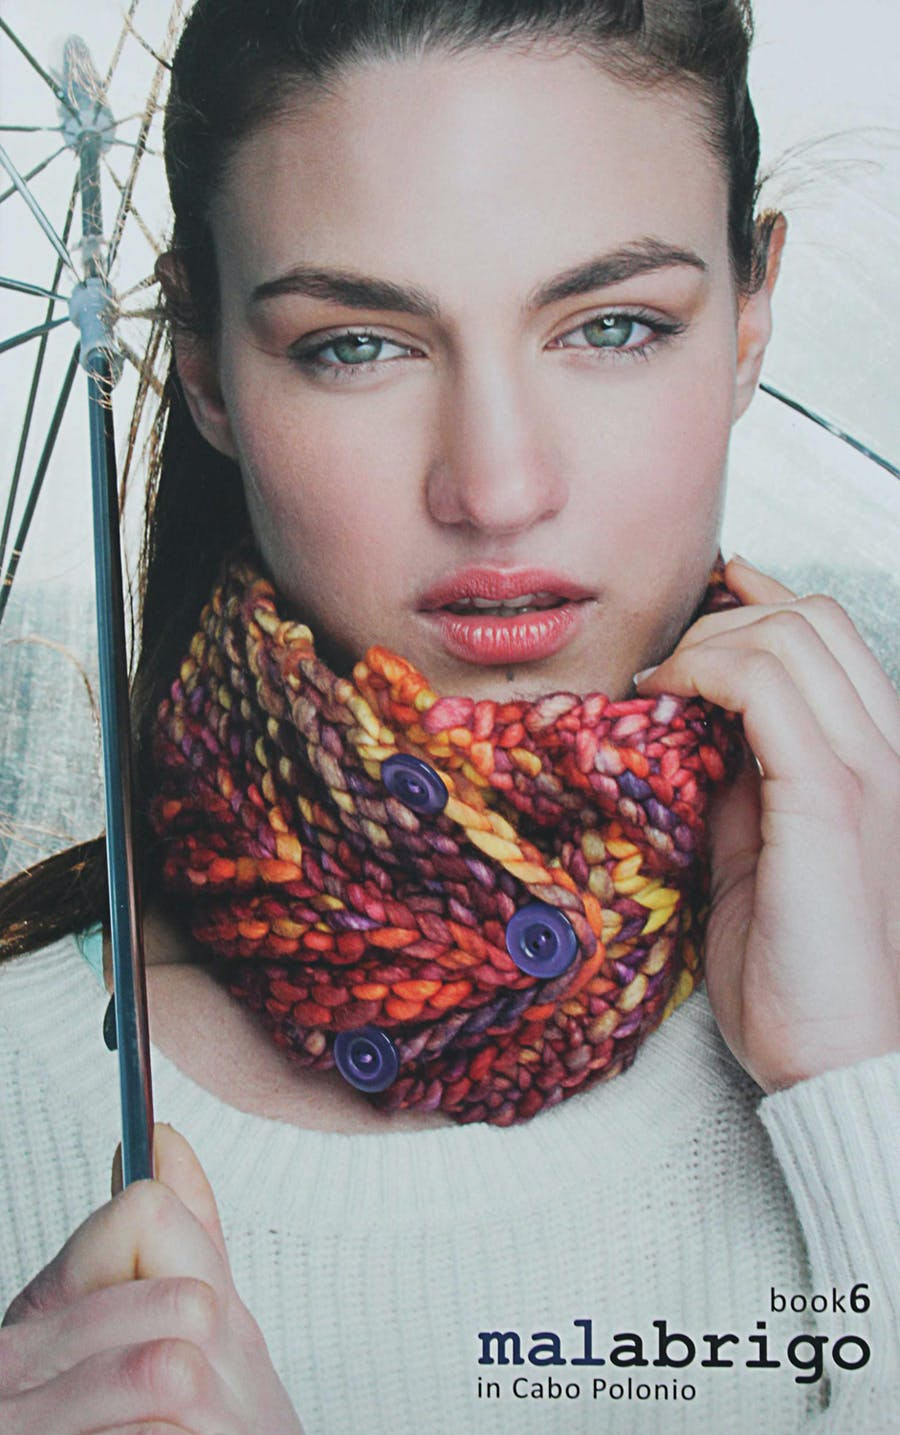 malabrigo book 6 cover. Girl with an umbrella and a knitted cowl